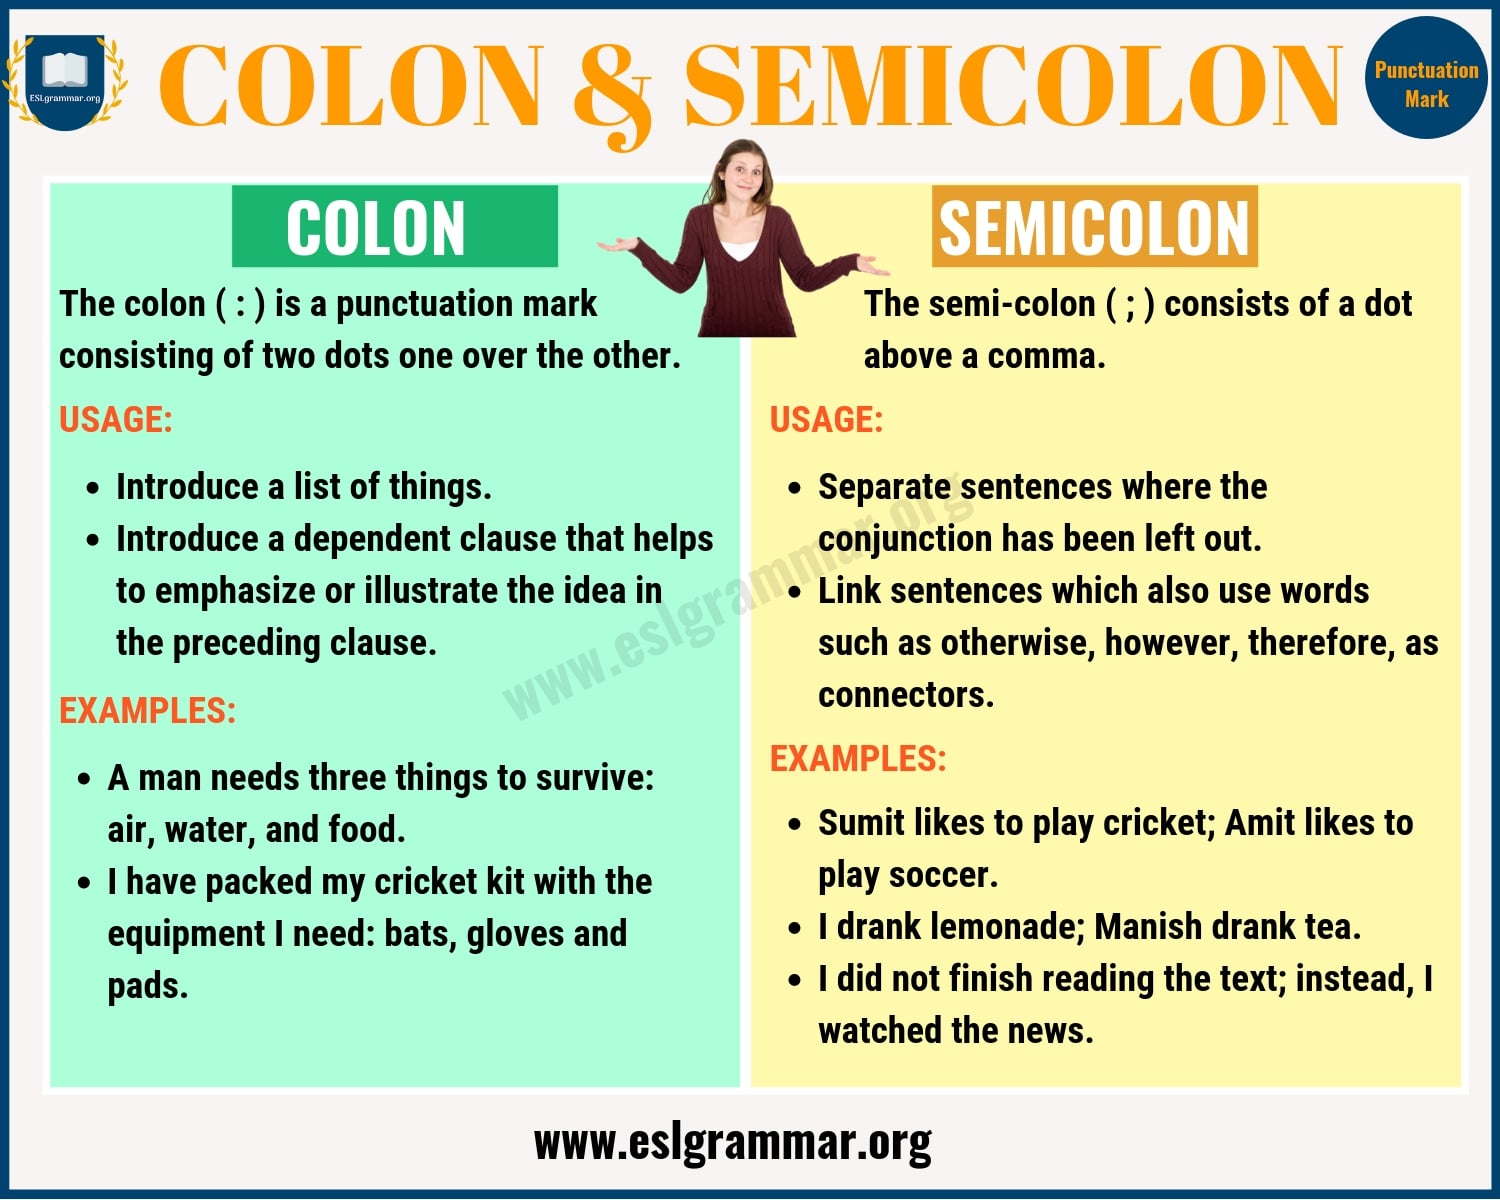 Colon vs Semicolon: When to Use a Semicolon vs a Colon